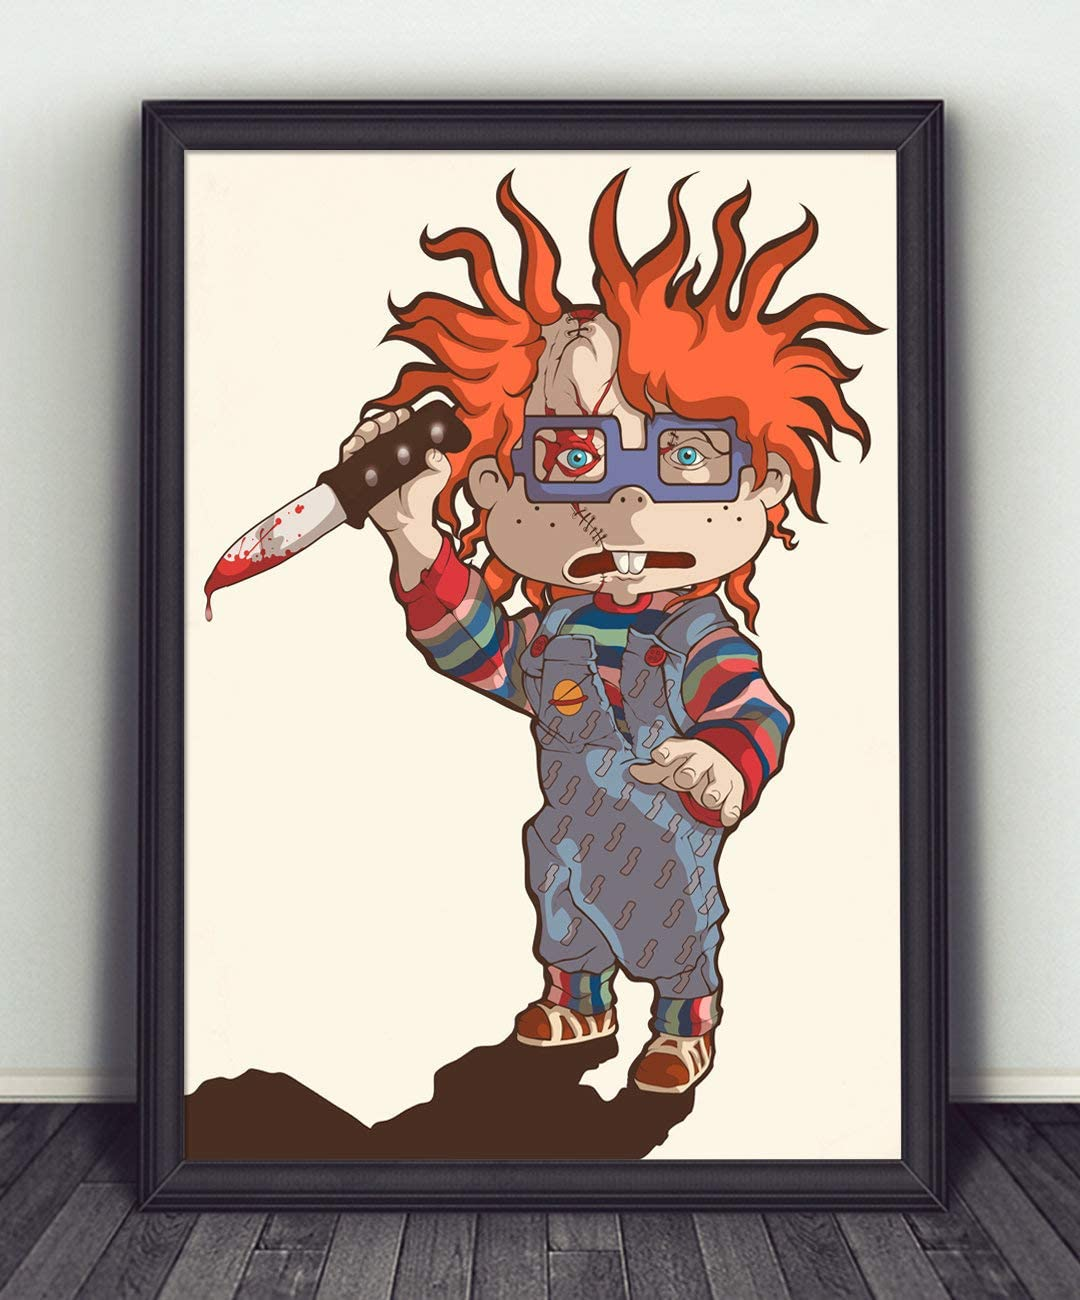 Rugrats Chuckie Childs Play Print Rugrats Chuckie Wall Poster Rugrats Chuckie Art Wall Decor Poster Horrible Movie Poster Decor Gifts for Kids